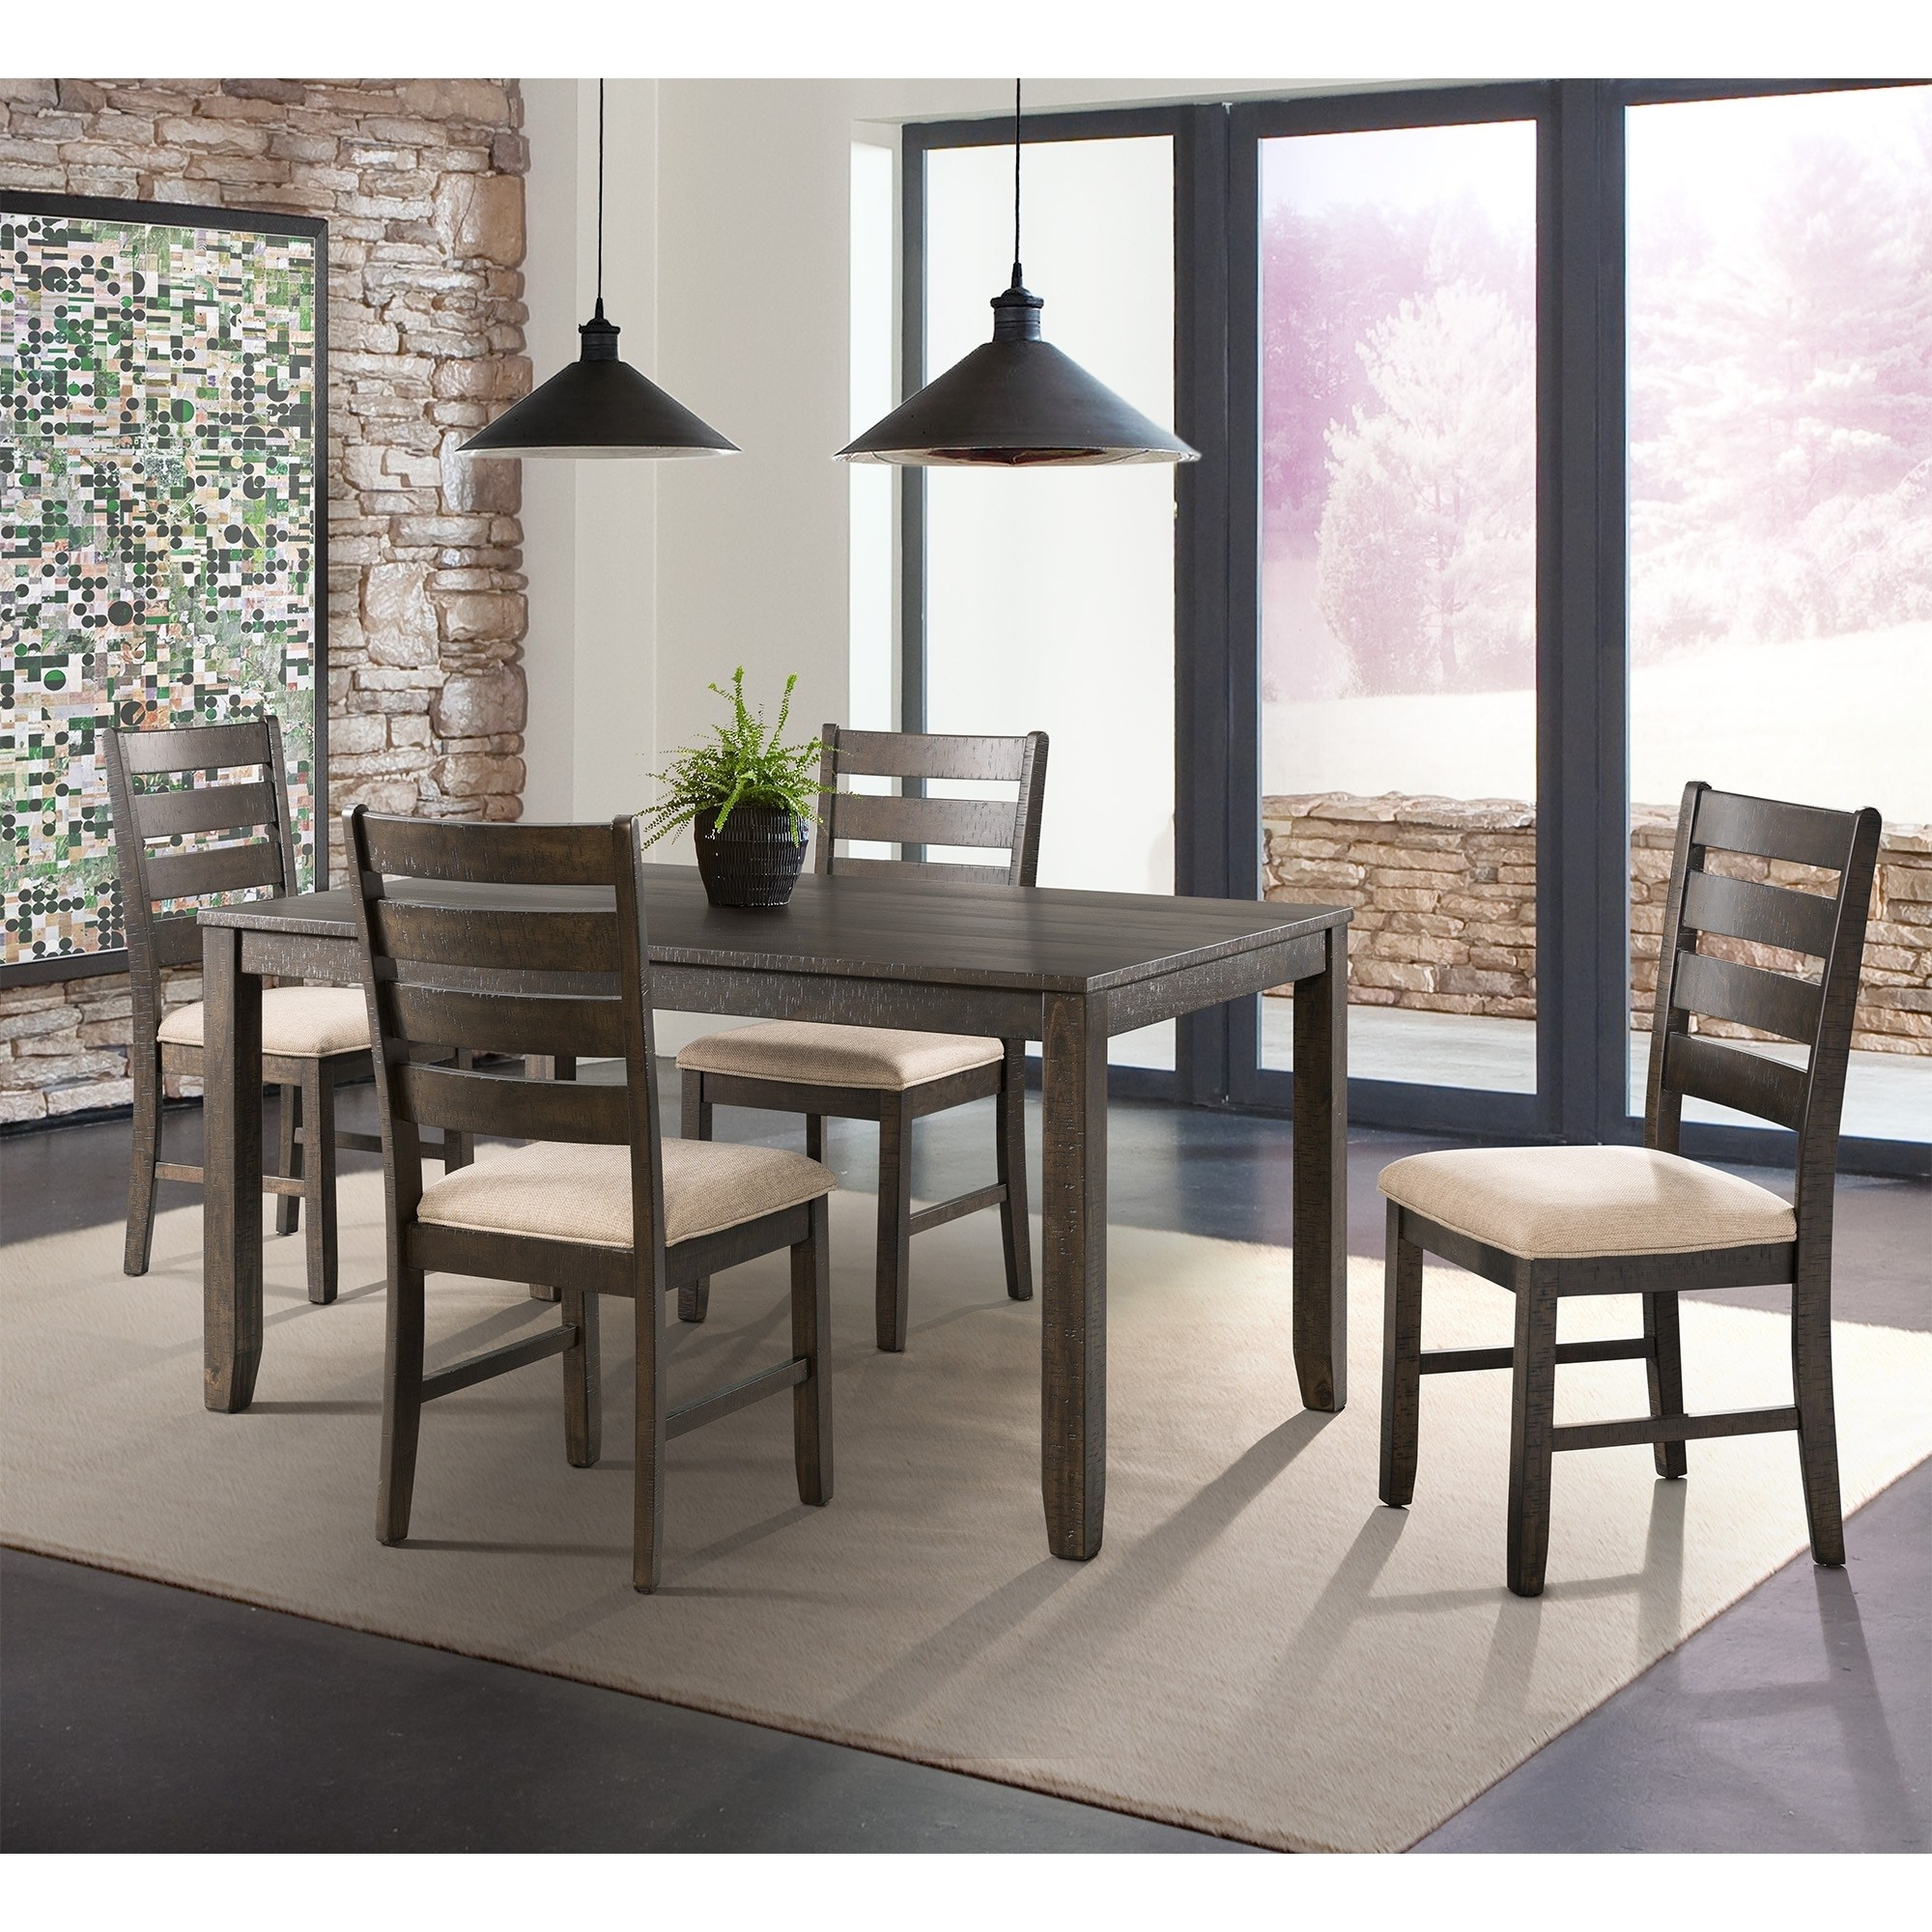 Picket House Powell 5 Piece Walnut Finish Dining Set, Brown Intended For Most Up To Date Casiano 5 Piece Dining Sets (View 7 of 20)